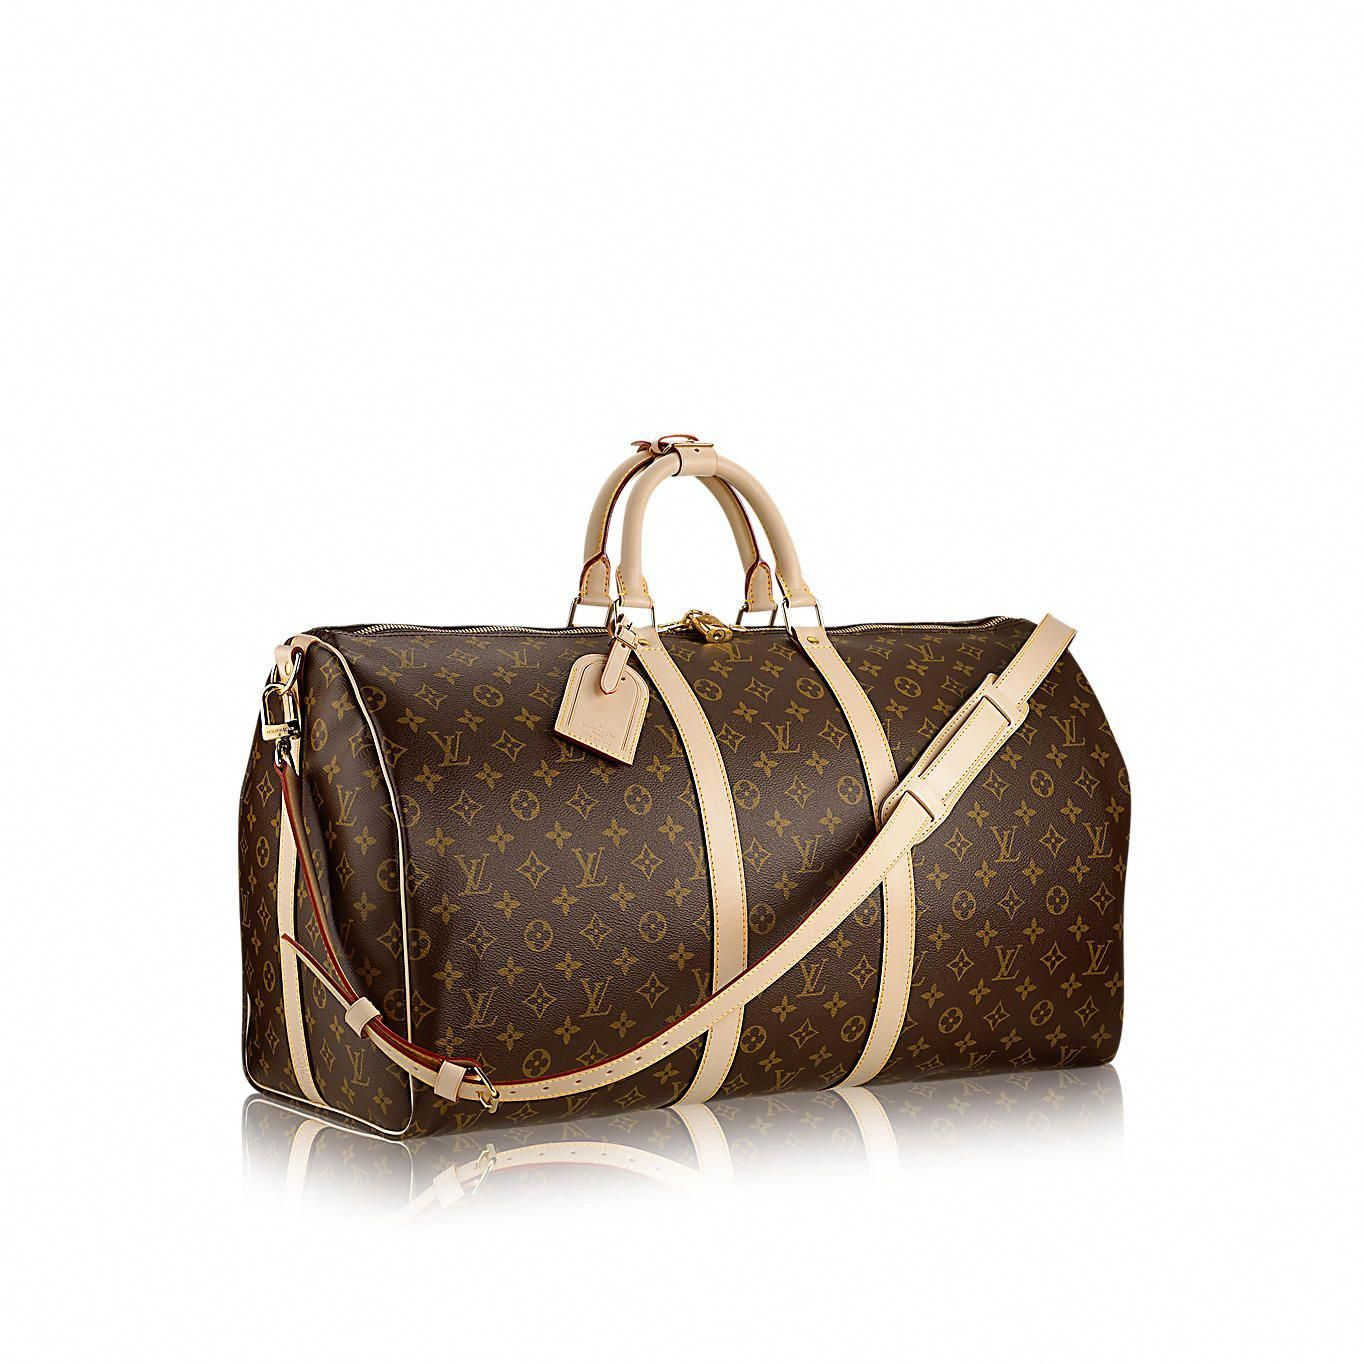 3fc444c715d5 Discover Louis Vuitton Keepall Bandoulière 55  An icon since the appearance  in 1930